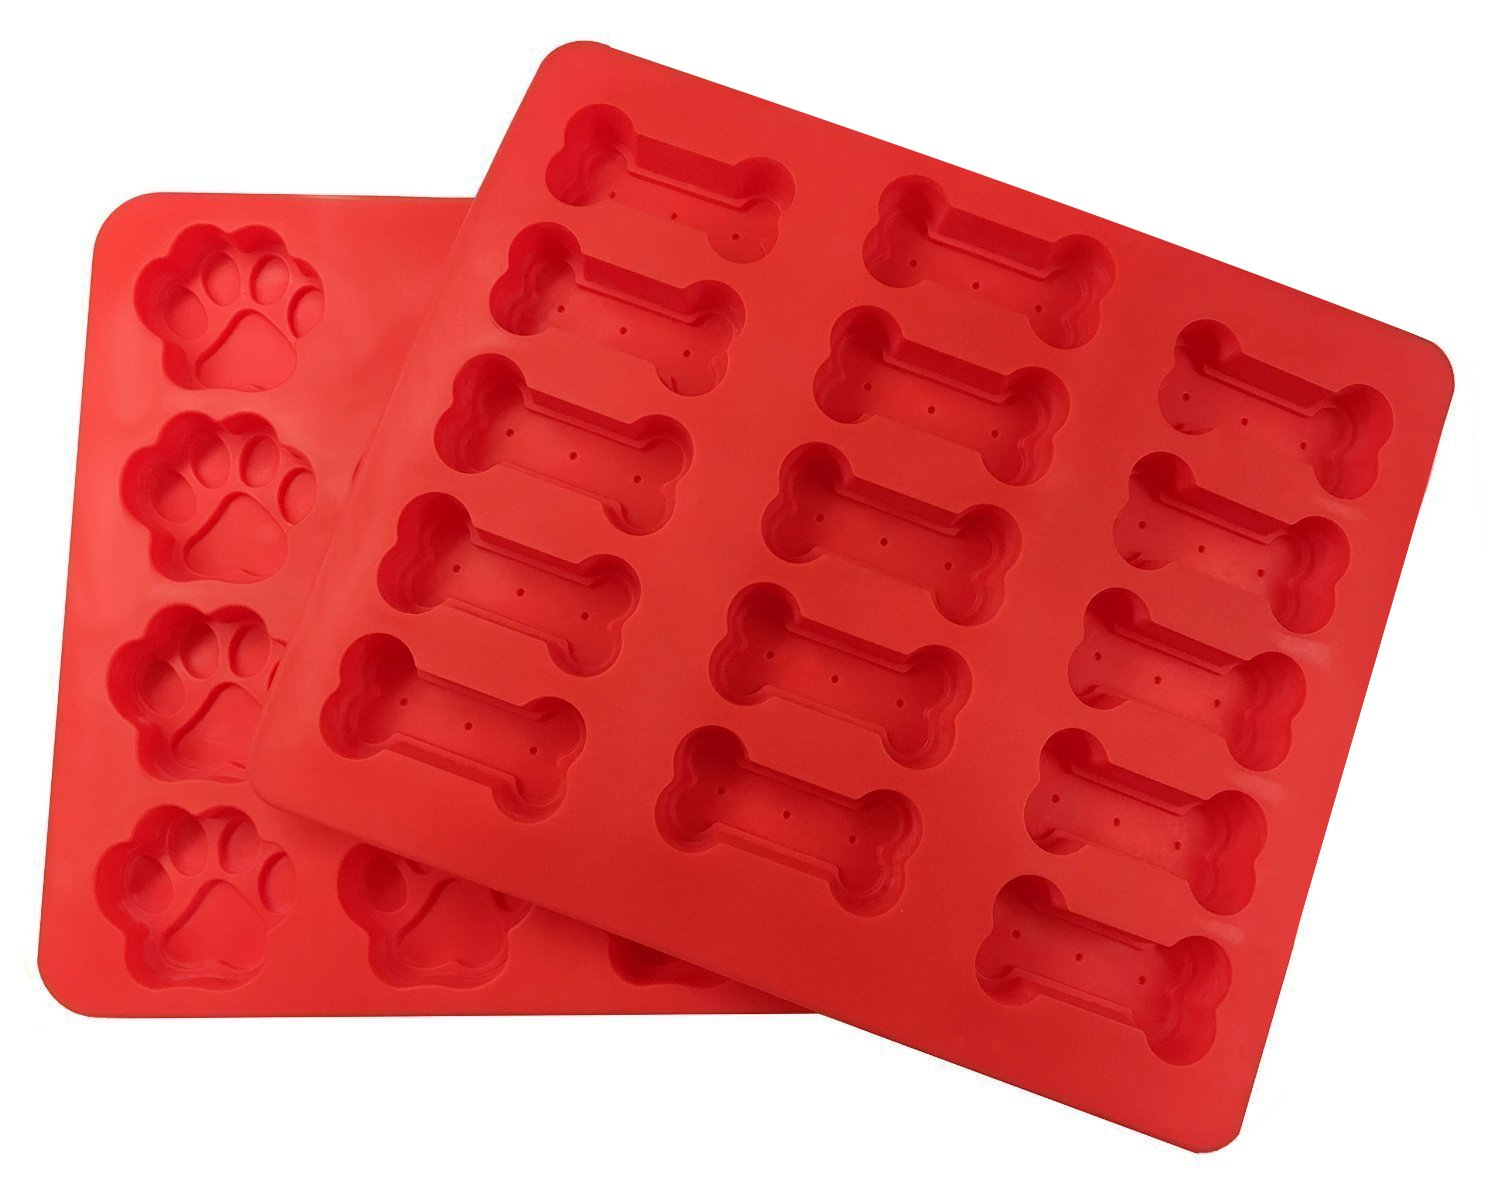 wellhouse Bake Bone and Paw Silicone Cake Mold - 15 Cavities 3'' - Food Grade Silicone Non-Stick